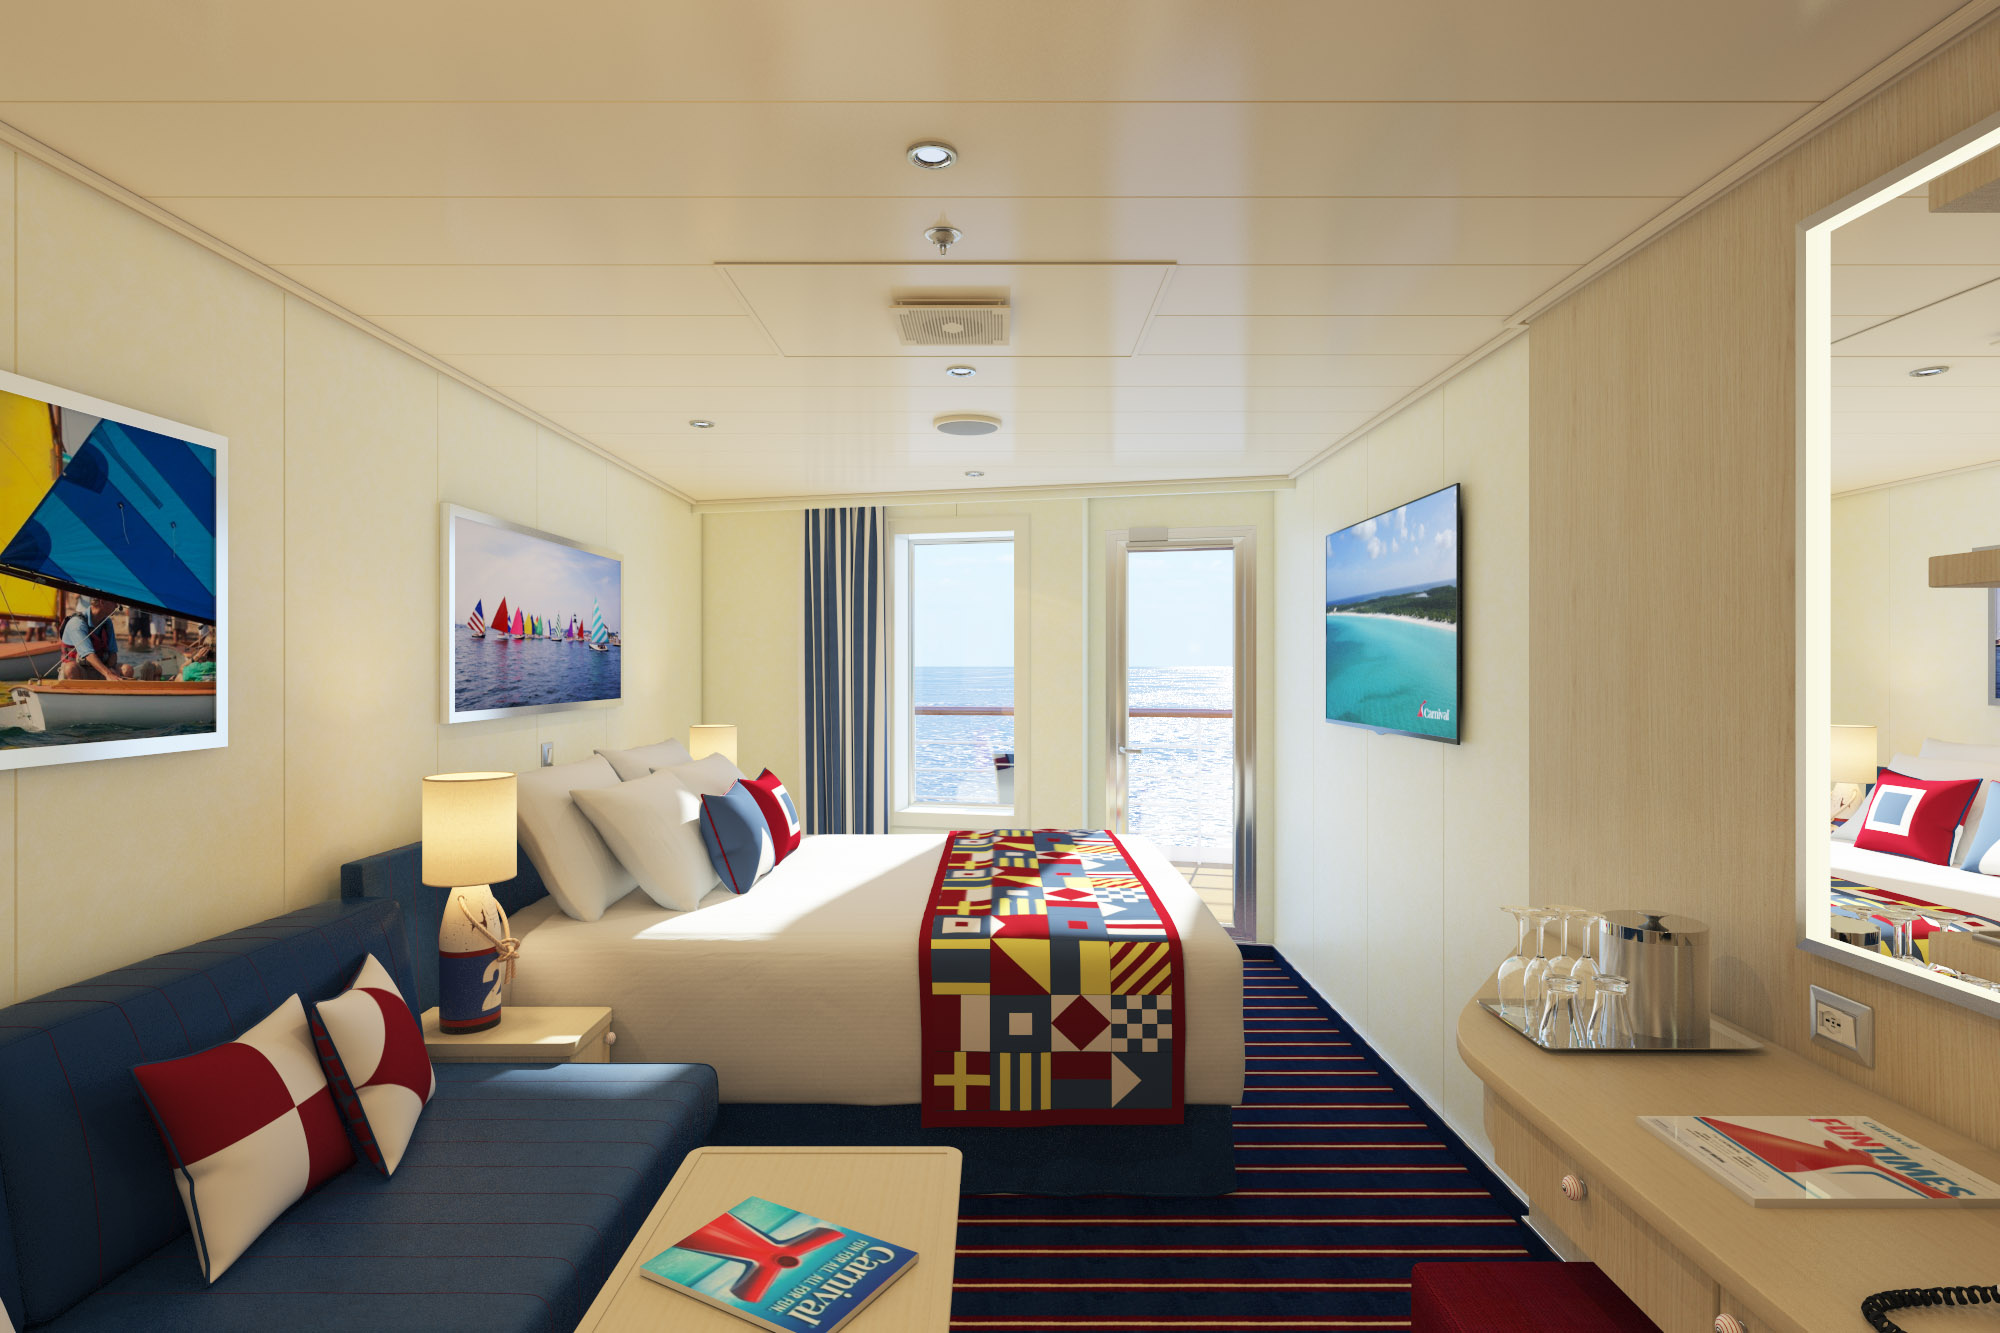 Carnival Horizon to Feature New Aft-View Extended Balcony Family Harbor Staterooms, Additional Havana Cabins